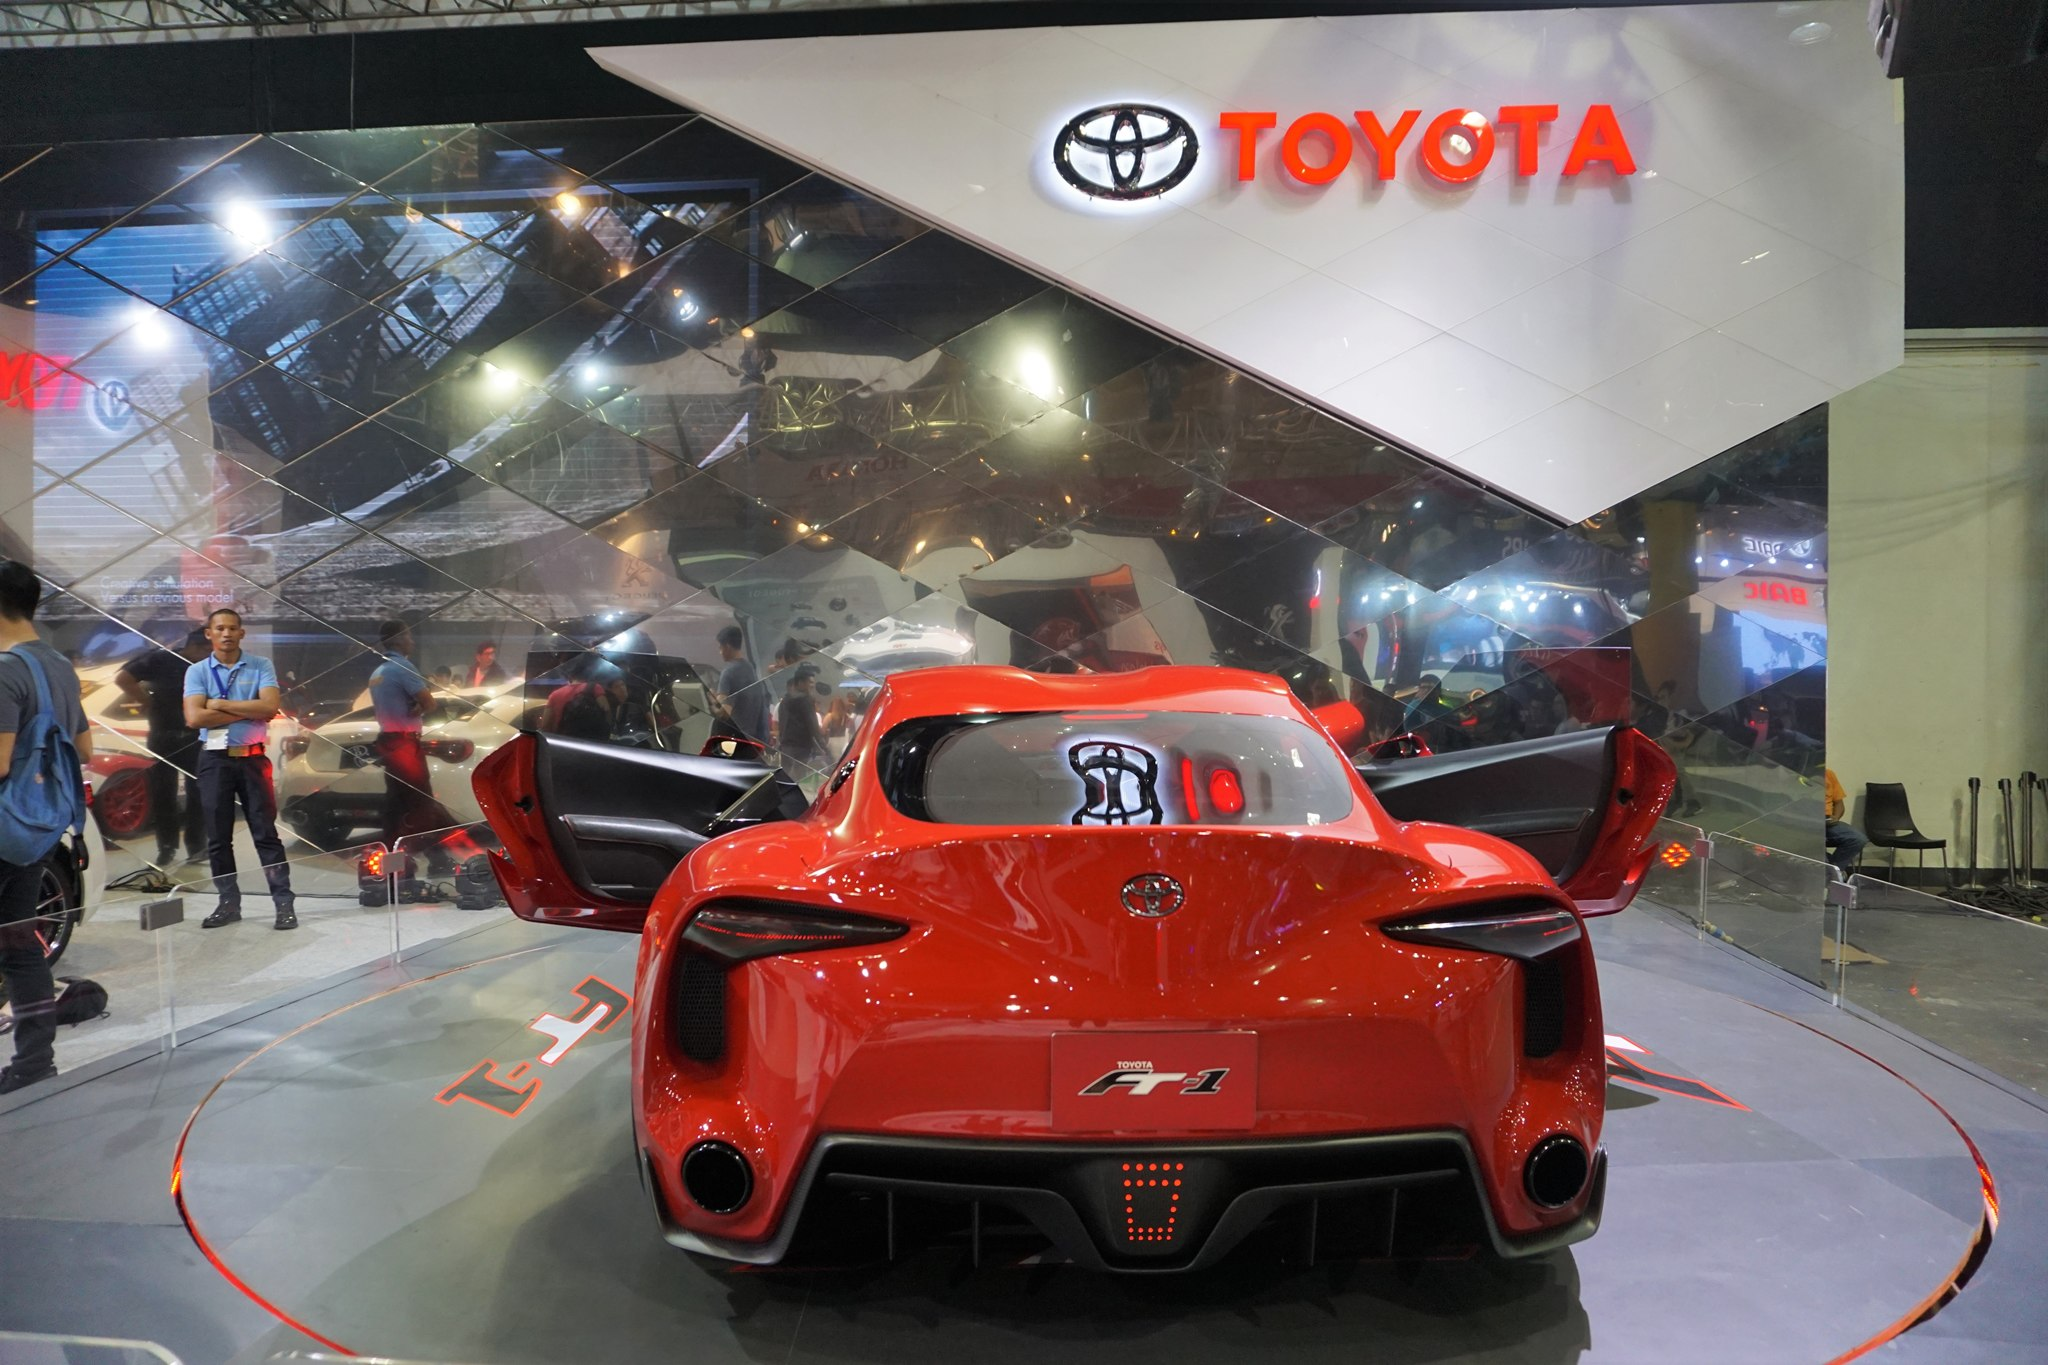 toyota-ft-1-concept-car-at-the-philippine-international-motor-show-4